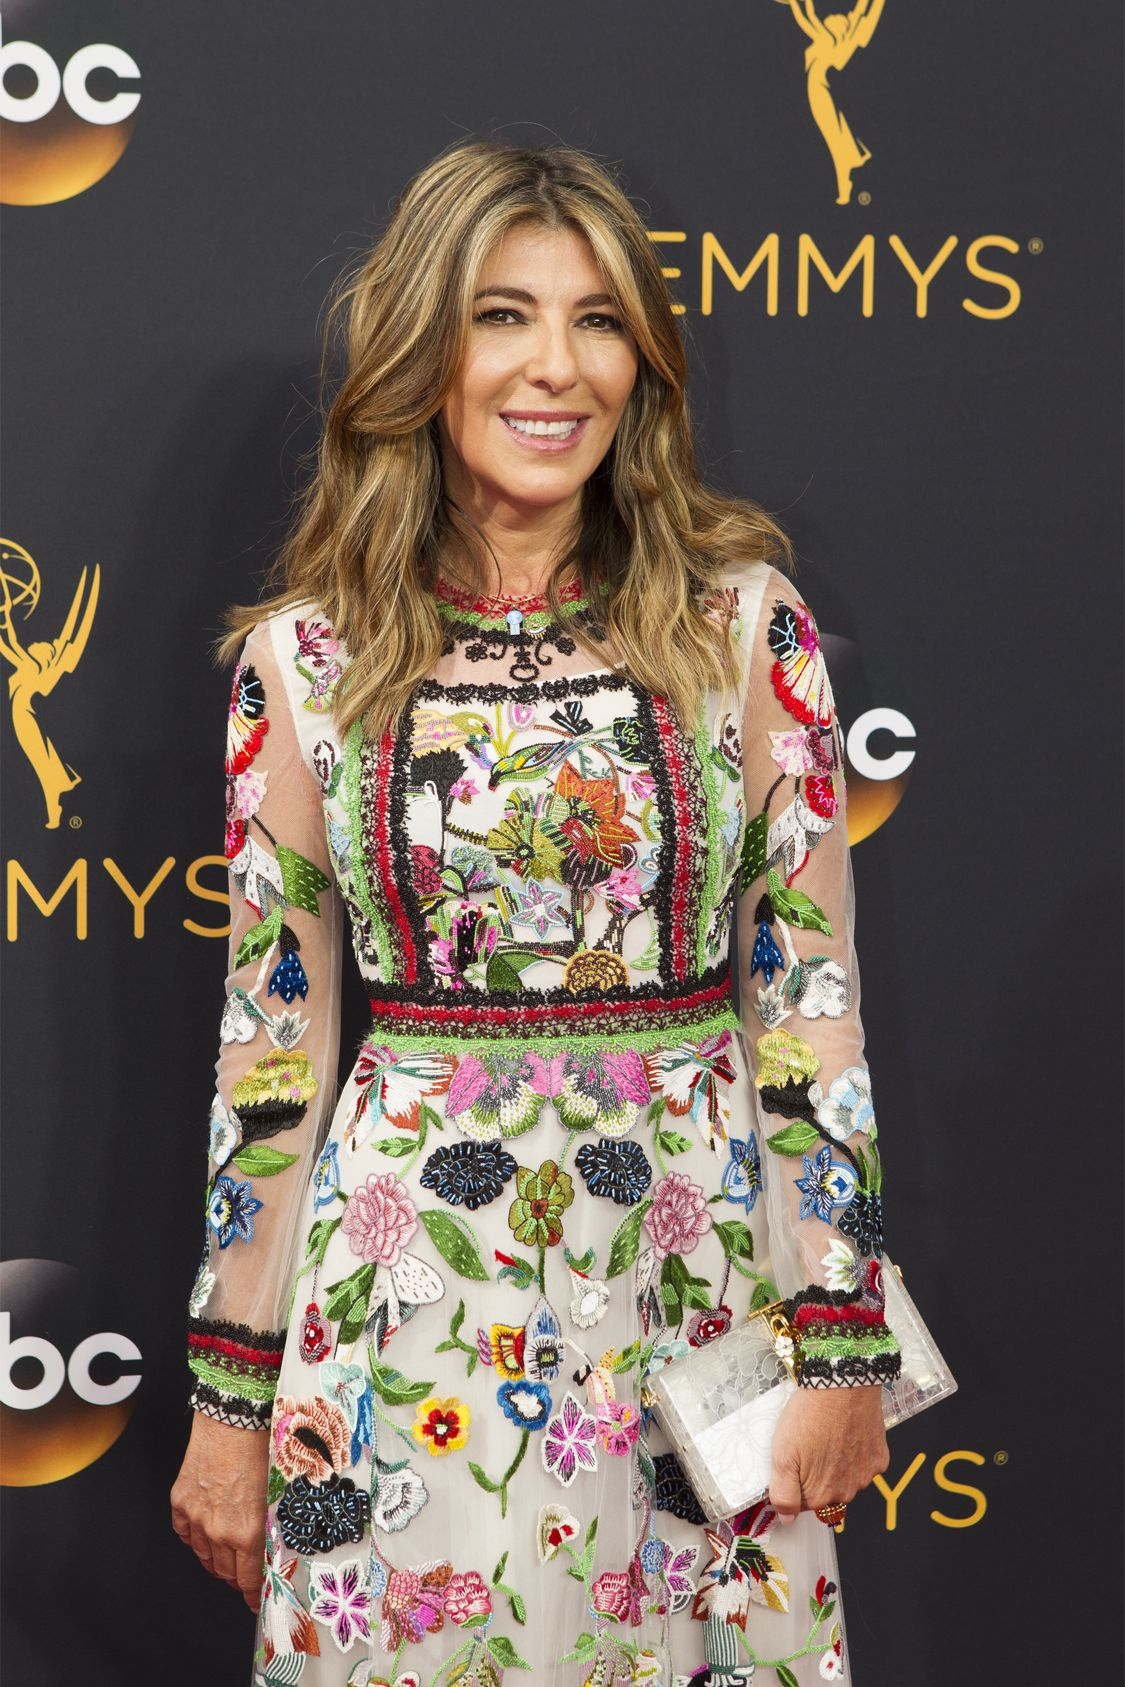 """THE 68TH EMMY(r) AWARDS - """"The 68th Emmy Awards"""" broadcasts live from The Microsoft Theater in Los Angeles, Sunday, September 18 (7:00-11:00 p.m. EDT/4:00-8:00 p.m. PDT), on ABC and is hosted by Jimmy Kimmel. (ABC/Rick Rowell) NINA GARCIA"""